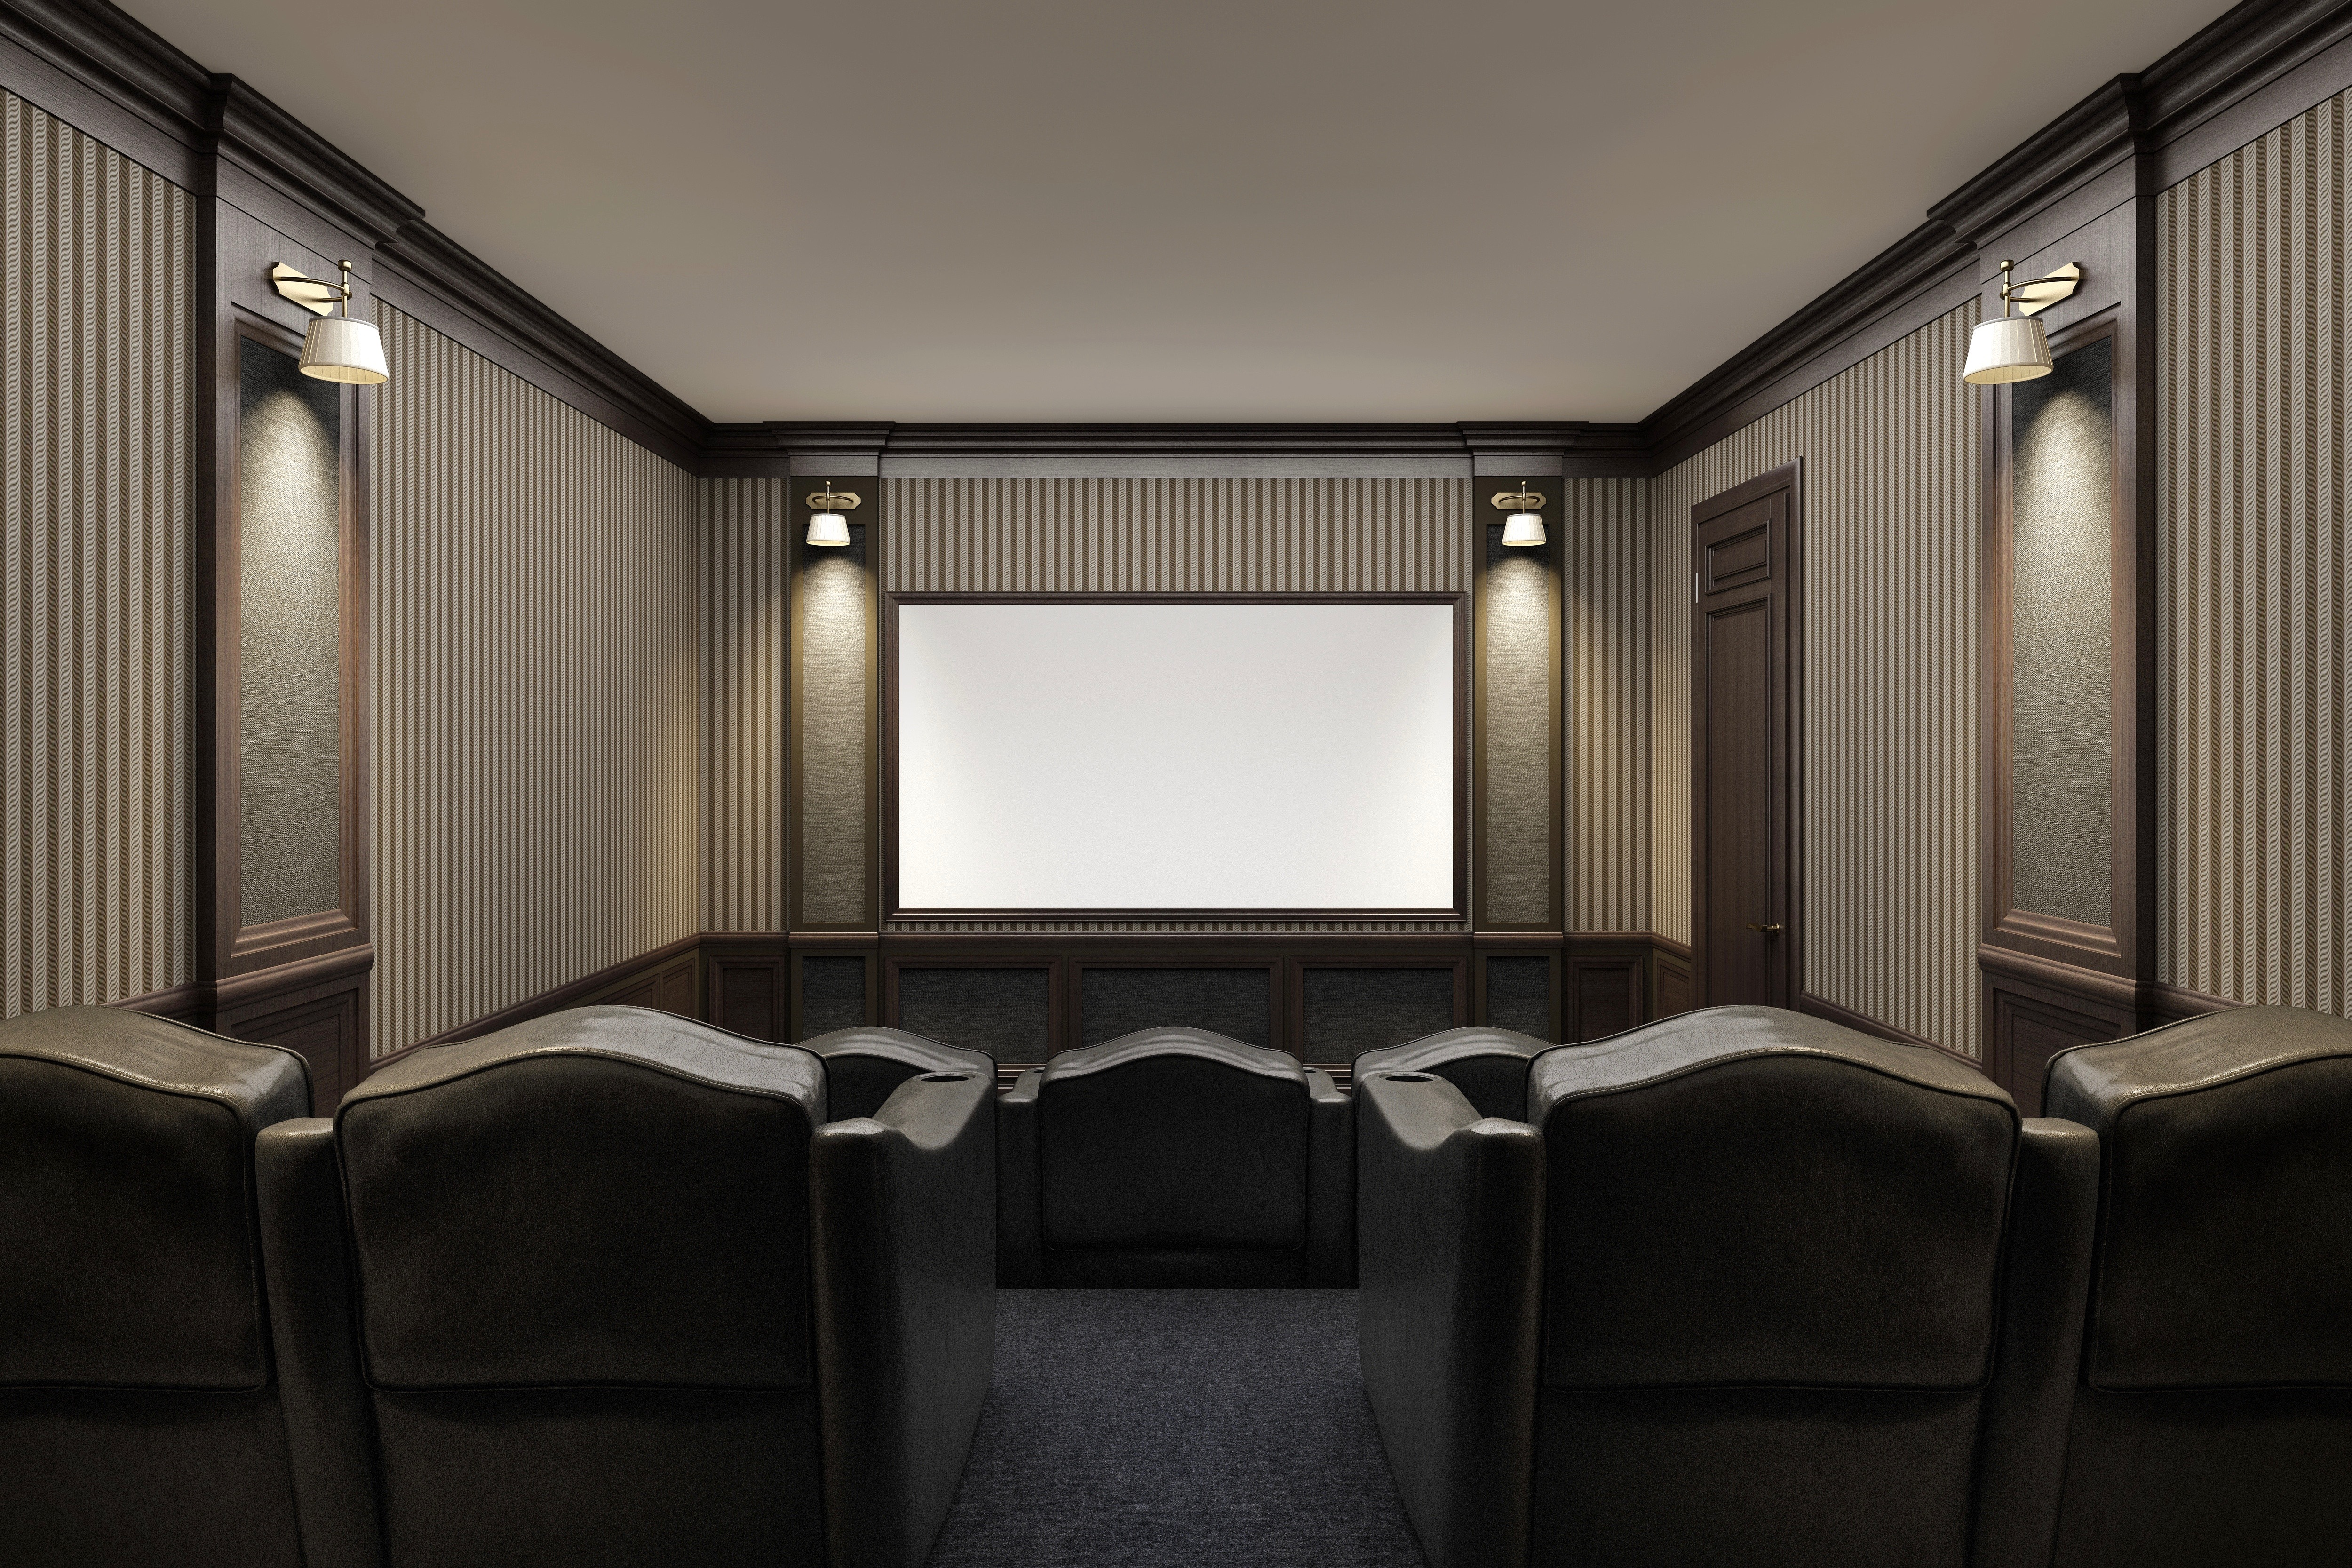 Home Theater Room The Pros And Cons Of A Home Theater And Game Room 55places